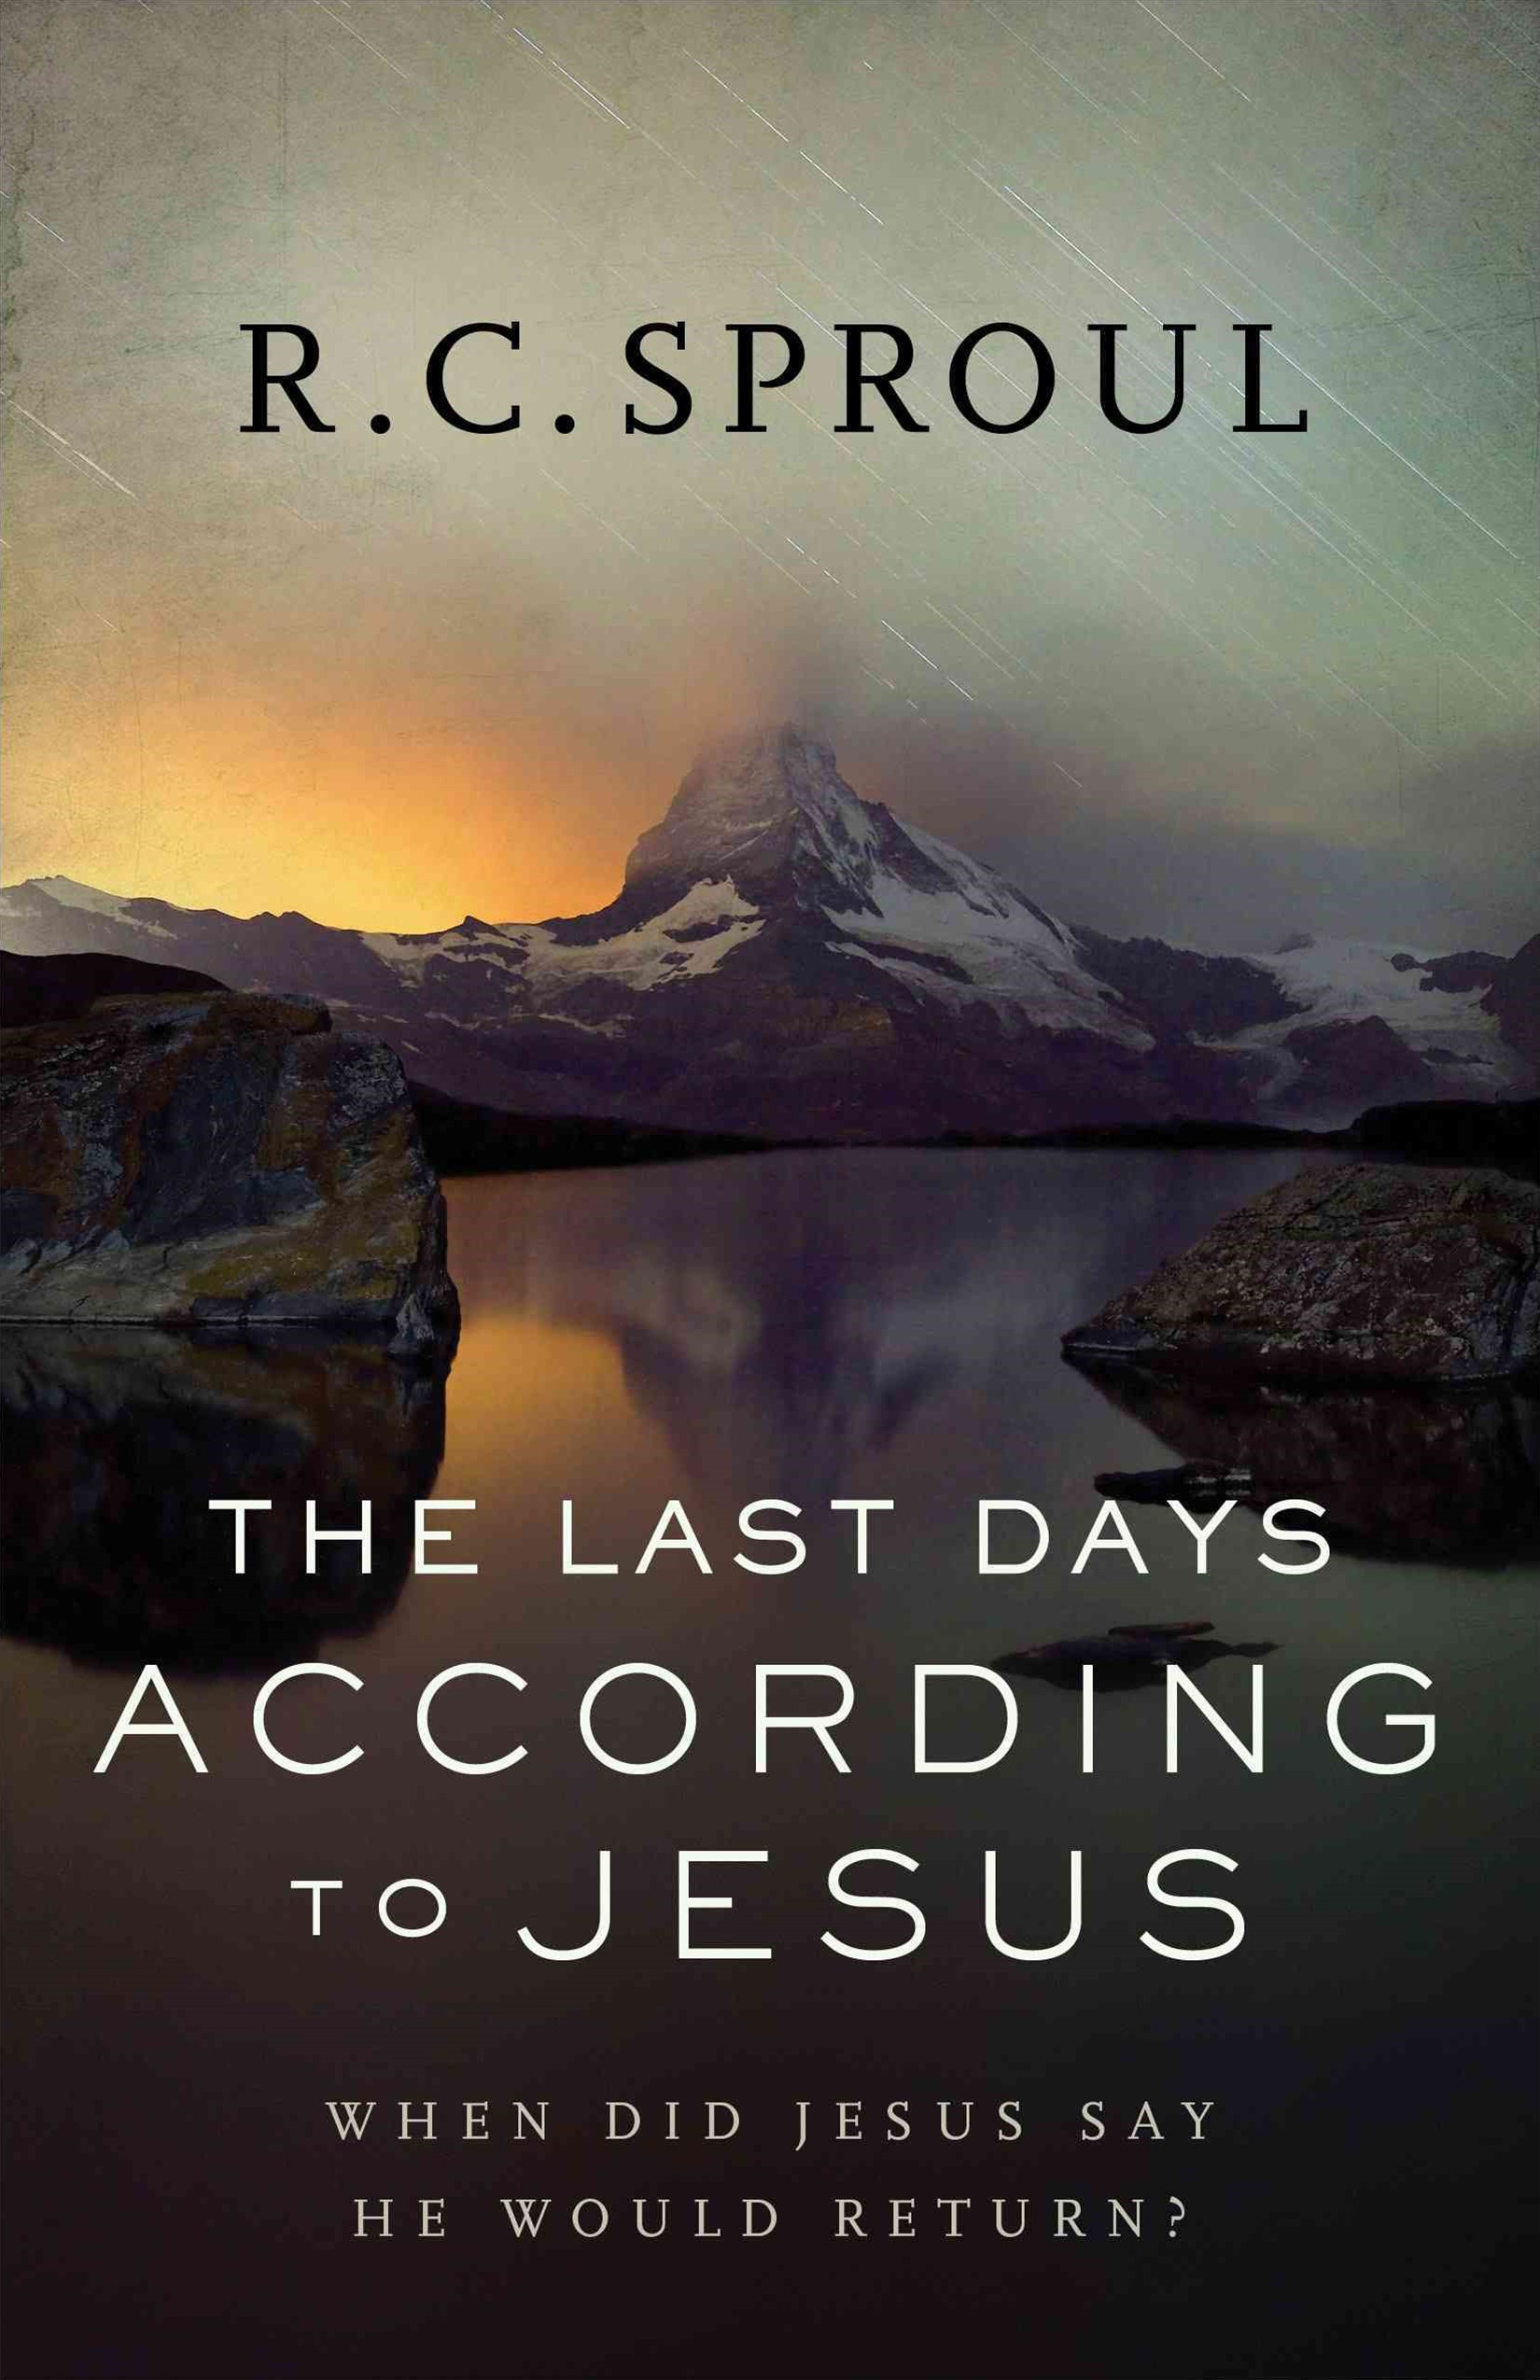 Last Days According to Jesus